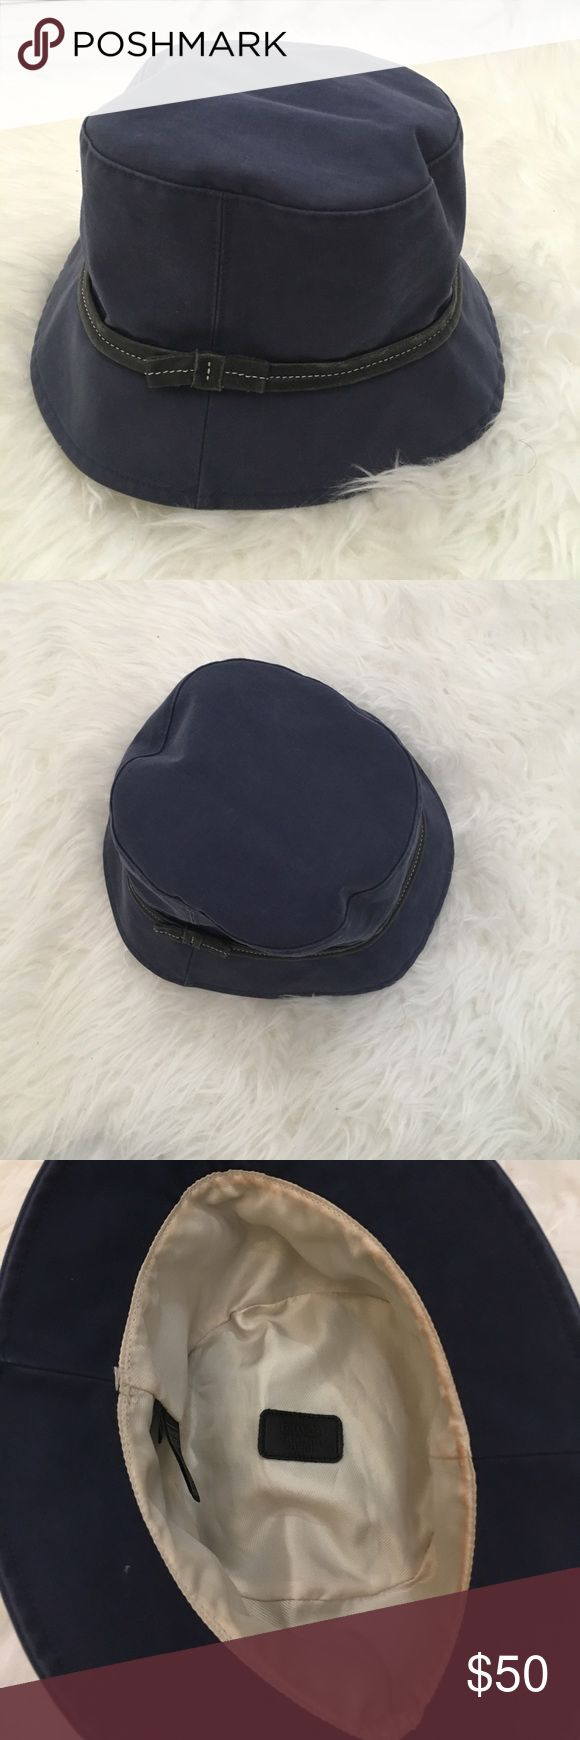 Coach Hat Used. Coach hat. Size: S Coach Accessories Hats